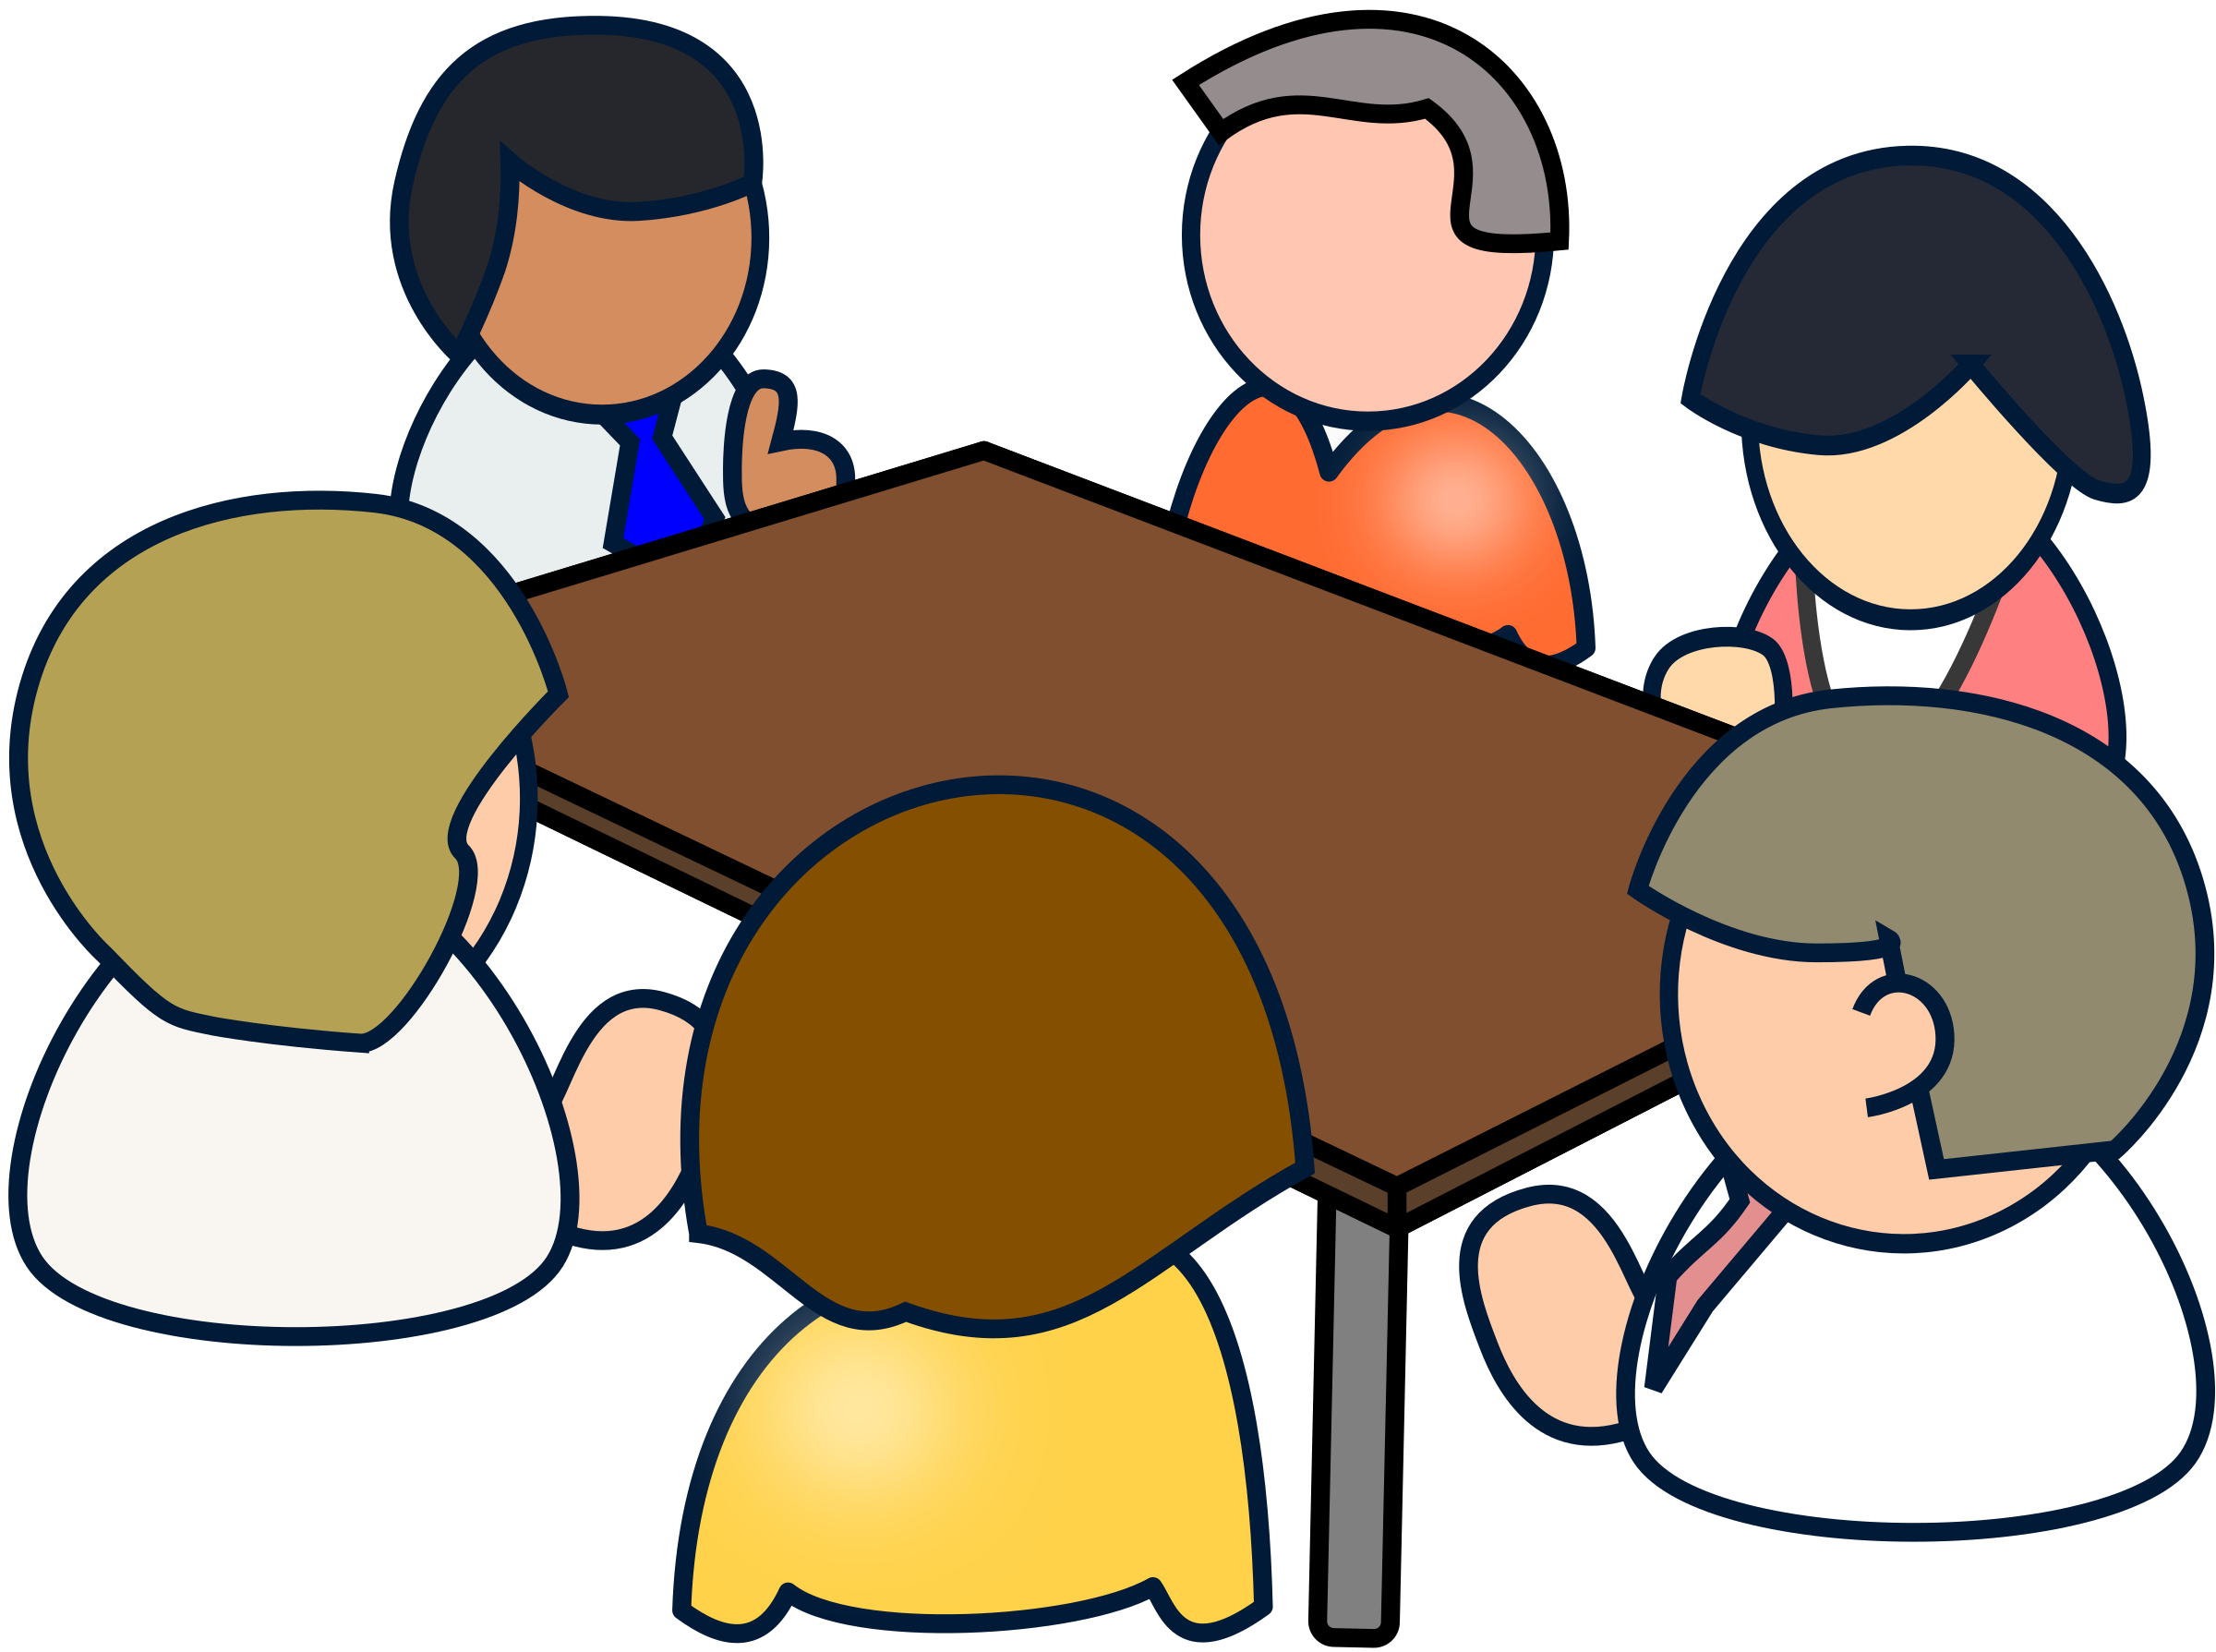 Diverse meeting icons png. Conversation clipart in depth